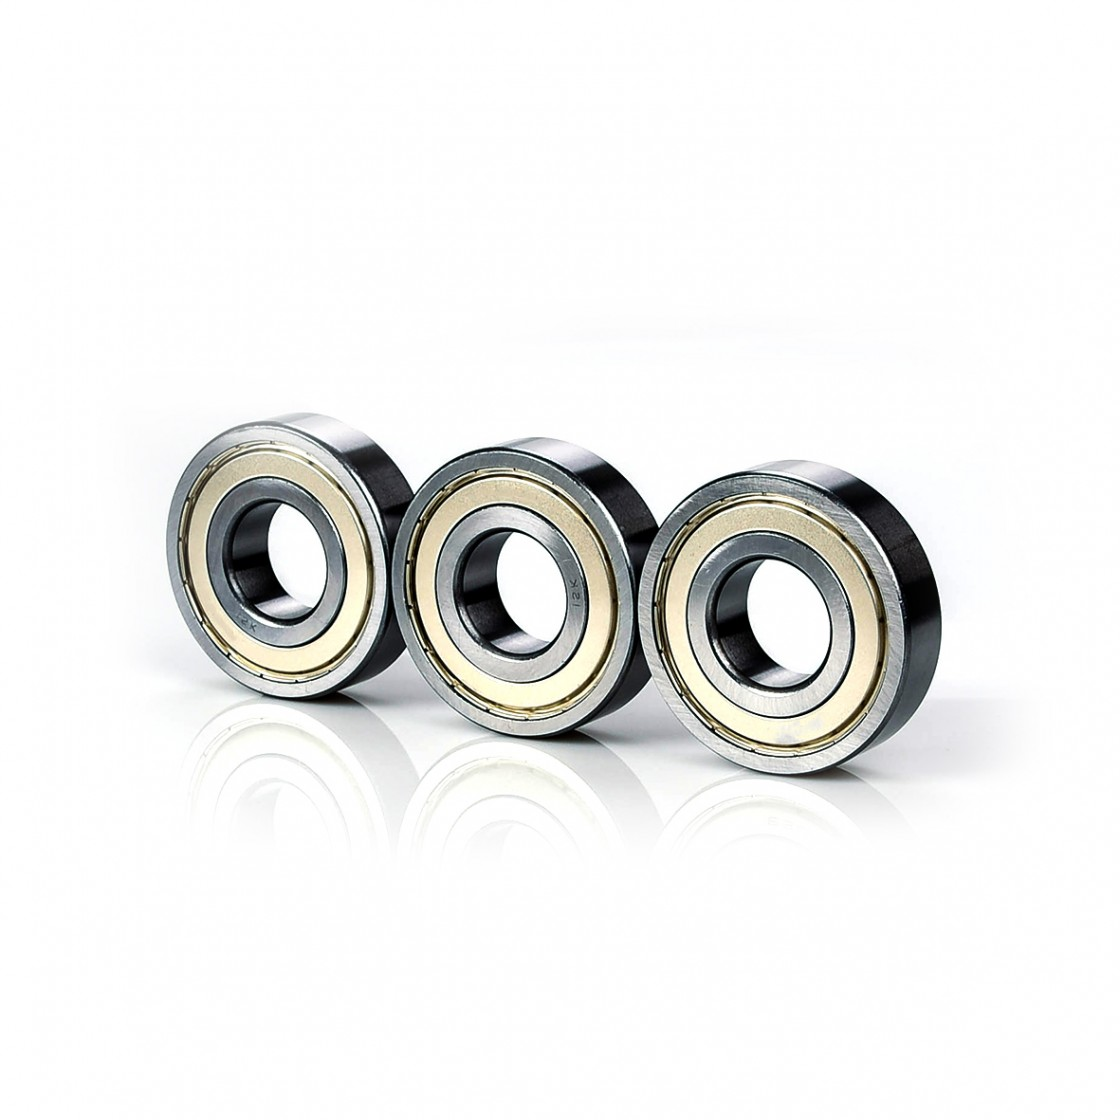 China Spherical Plain Bearing/Rod End /Plain /Radial Spherical Plain Bearing Ge20es Ge8e Ge10e Ge12e Ge25es Ge30es Ge35es Ge50es Ge60es Ge70es Ge80es Ge90es